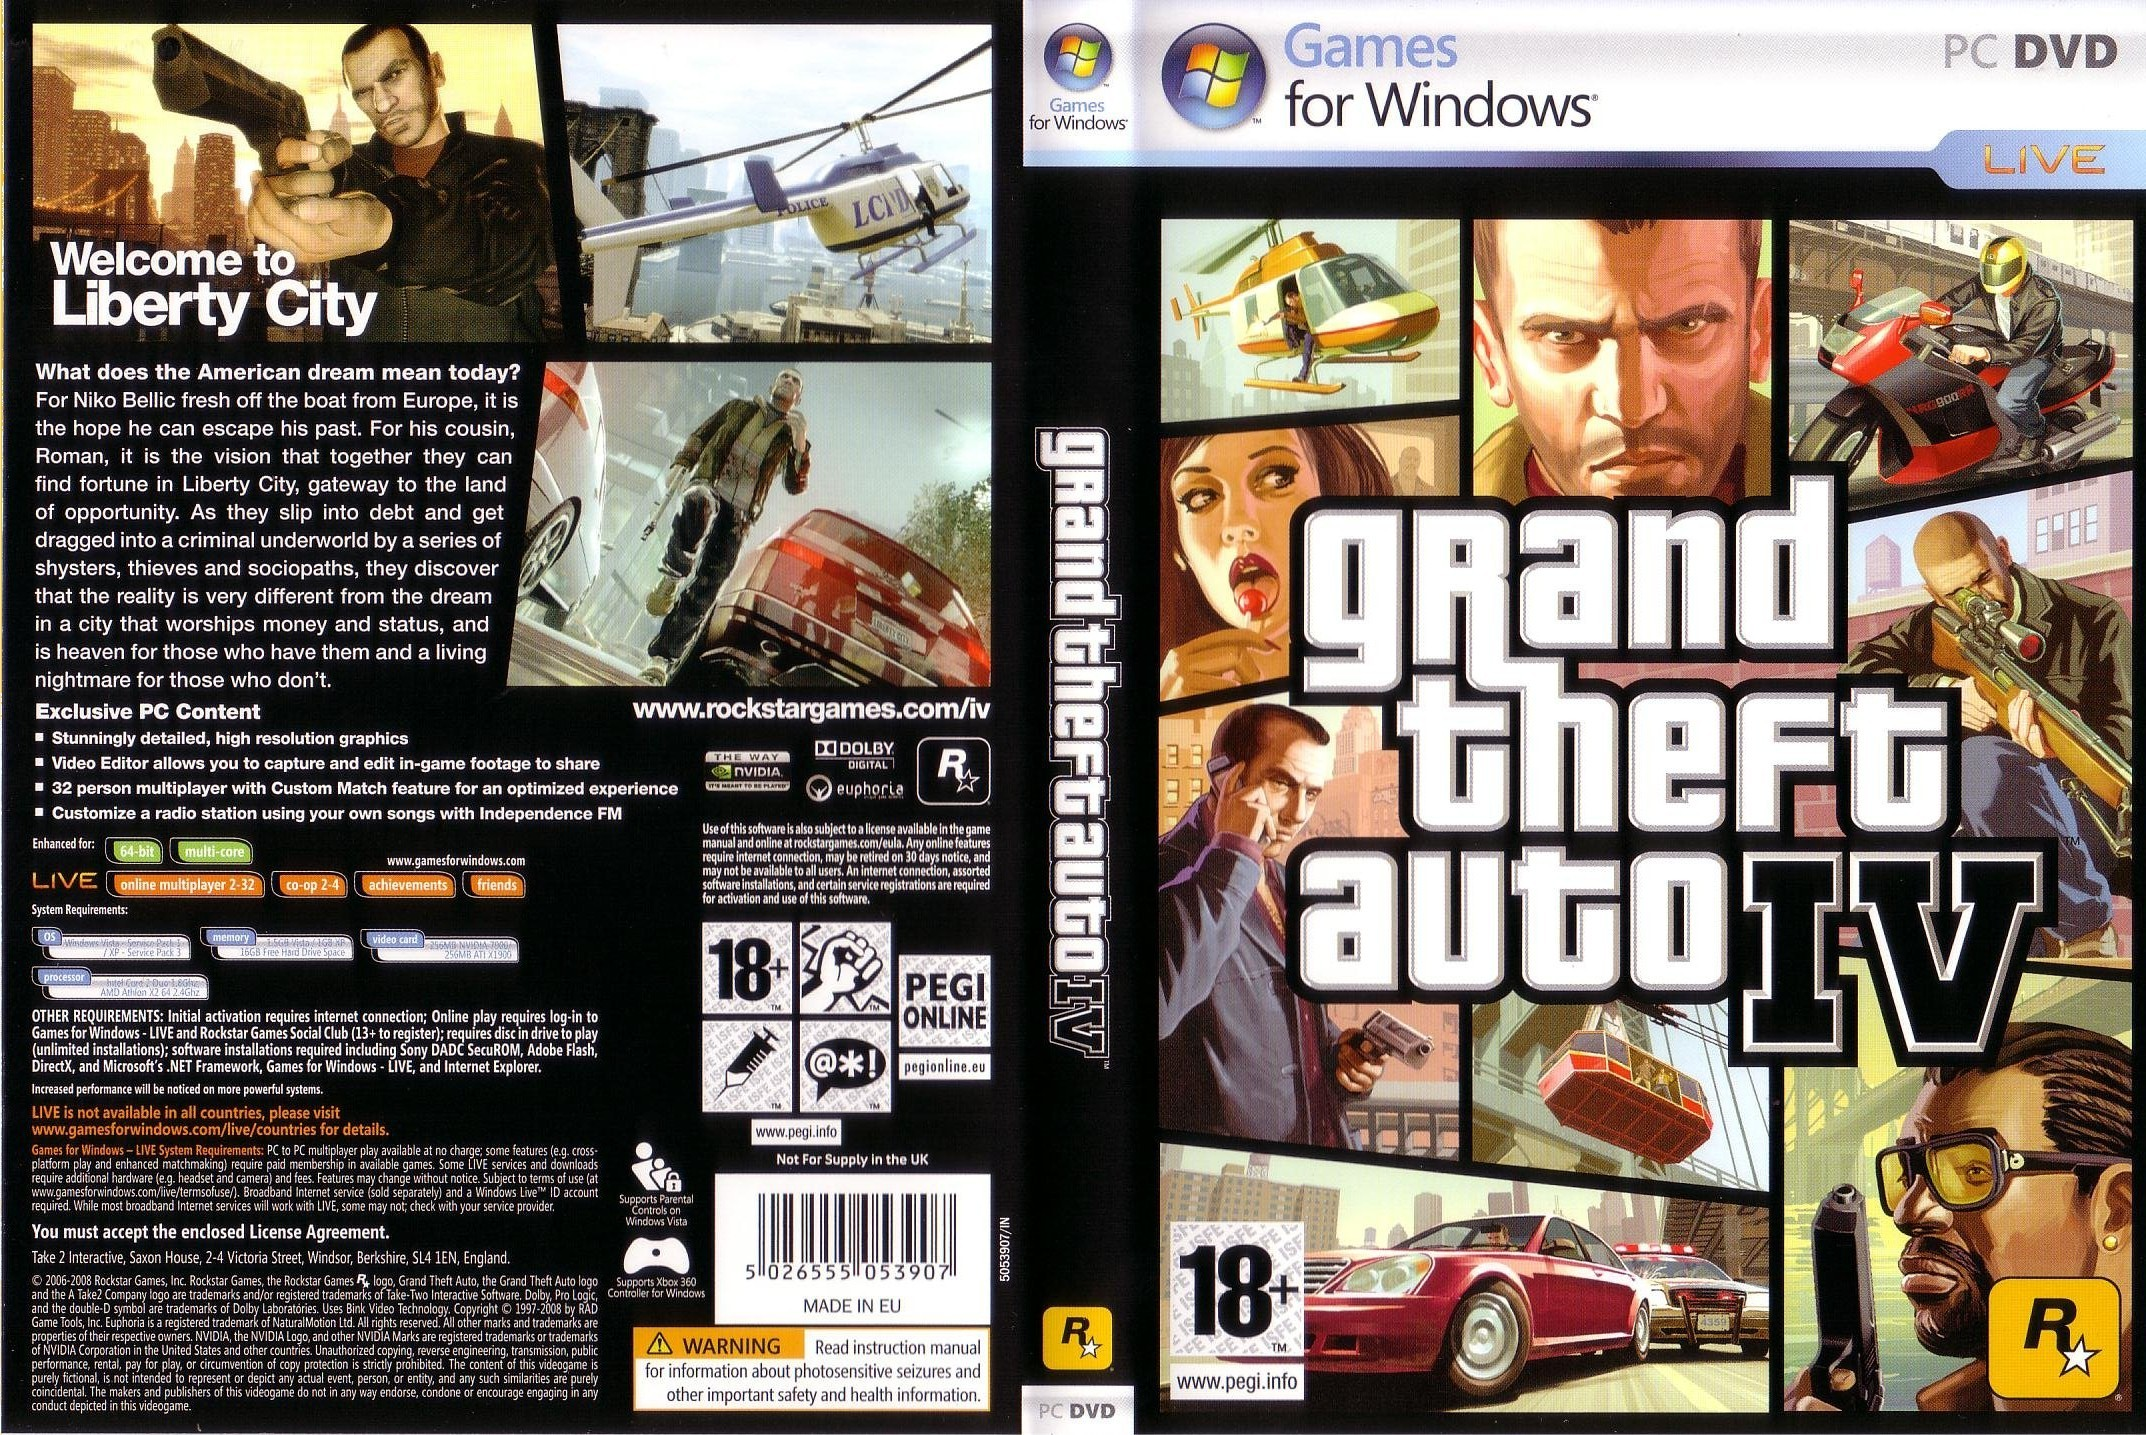 gta 4 highly compressed zip file download for pc